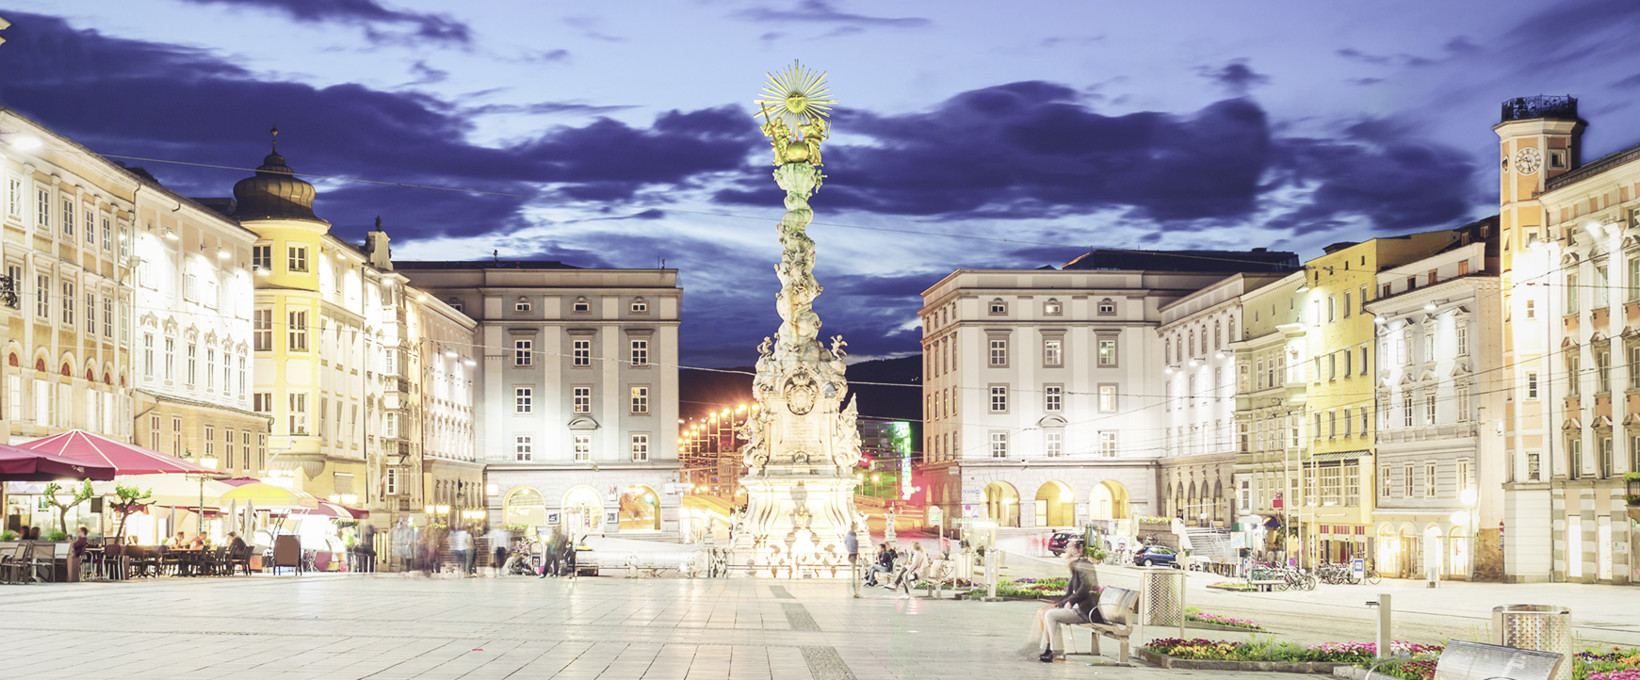 Central city with shops and restaurants | Linz